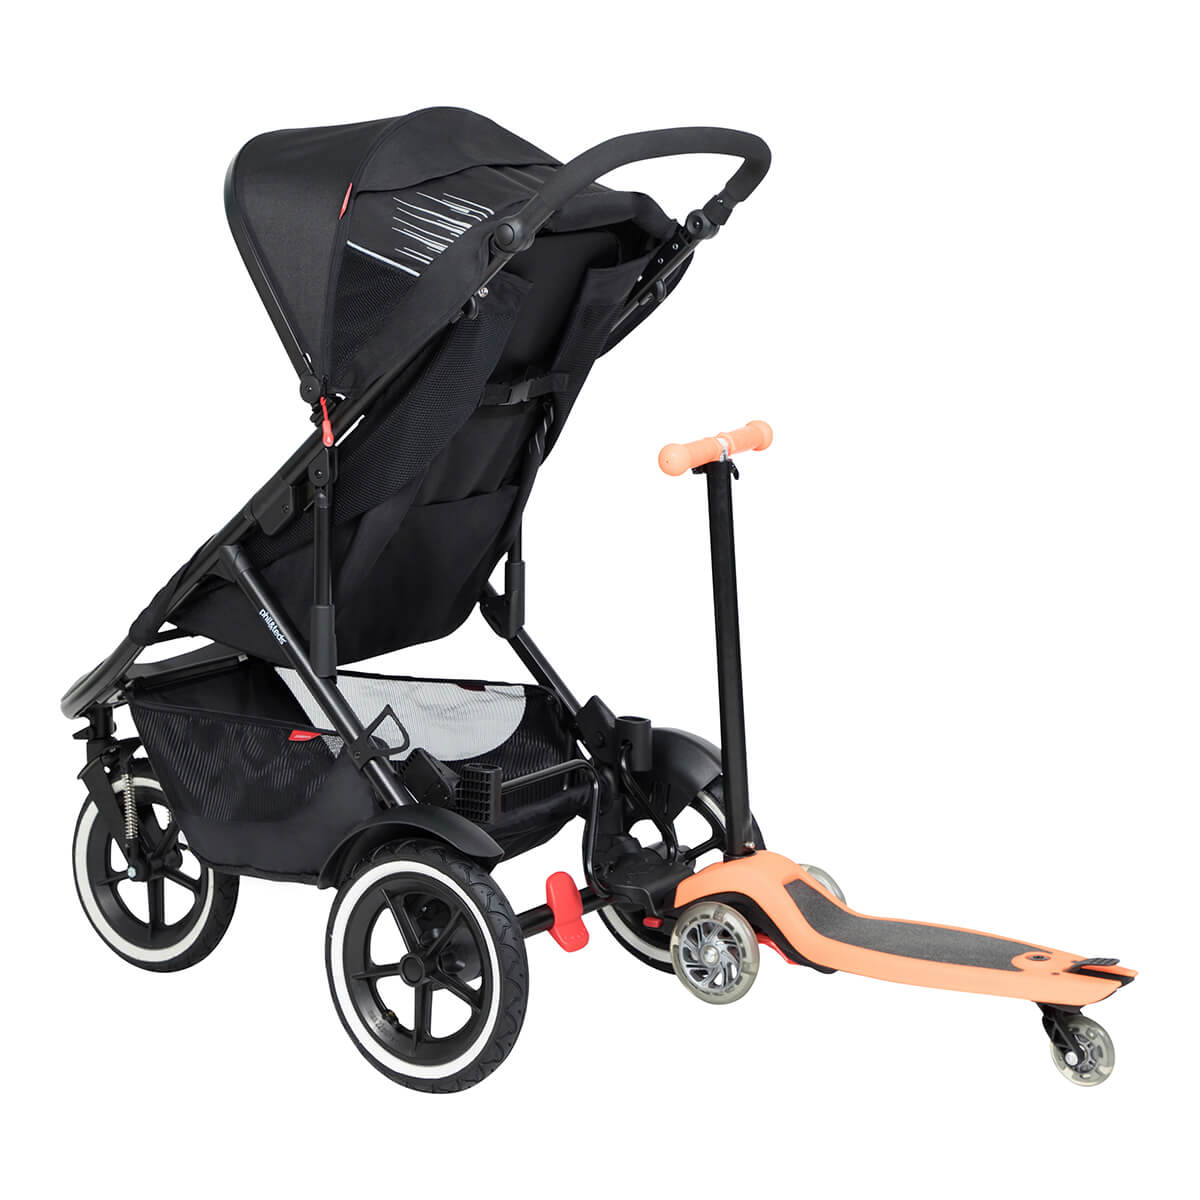 https://cdn.accentuate.io/4546157379689/19119322824809/philteds-sport-buggy-with-freerider-stroller-board-in-rear-v1625778188297.jpg?1200x1200